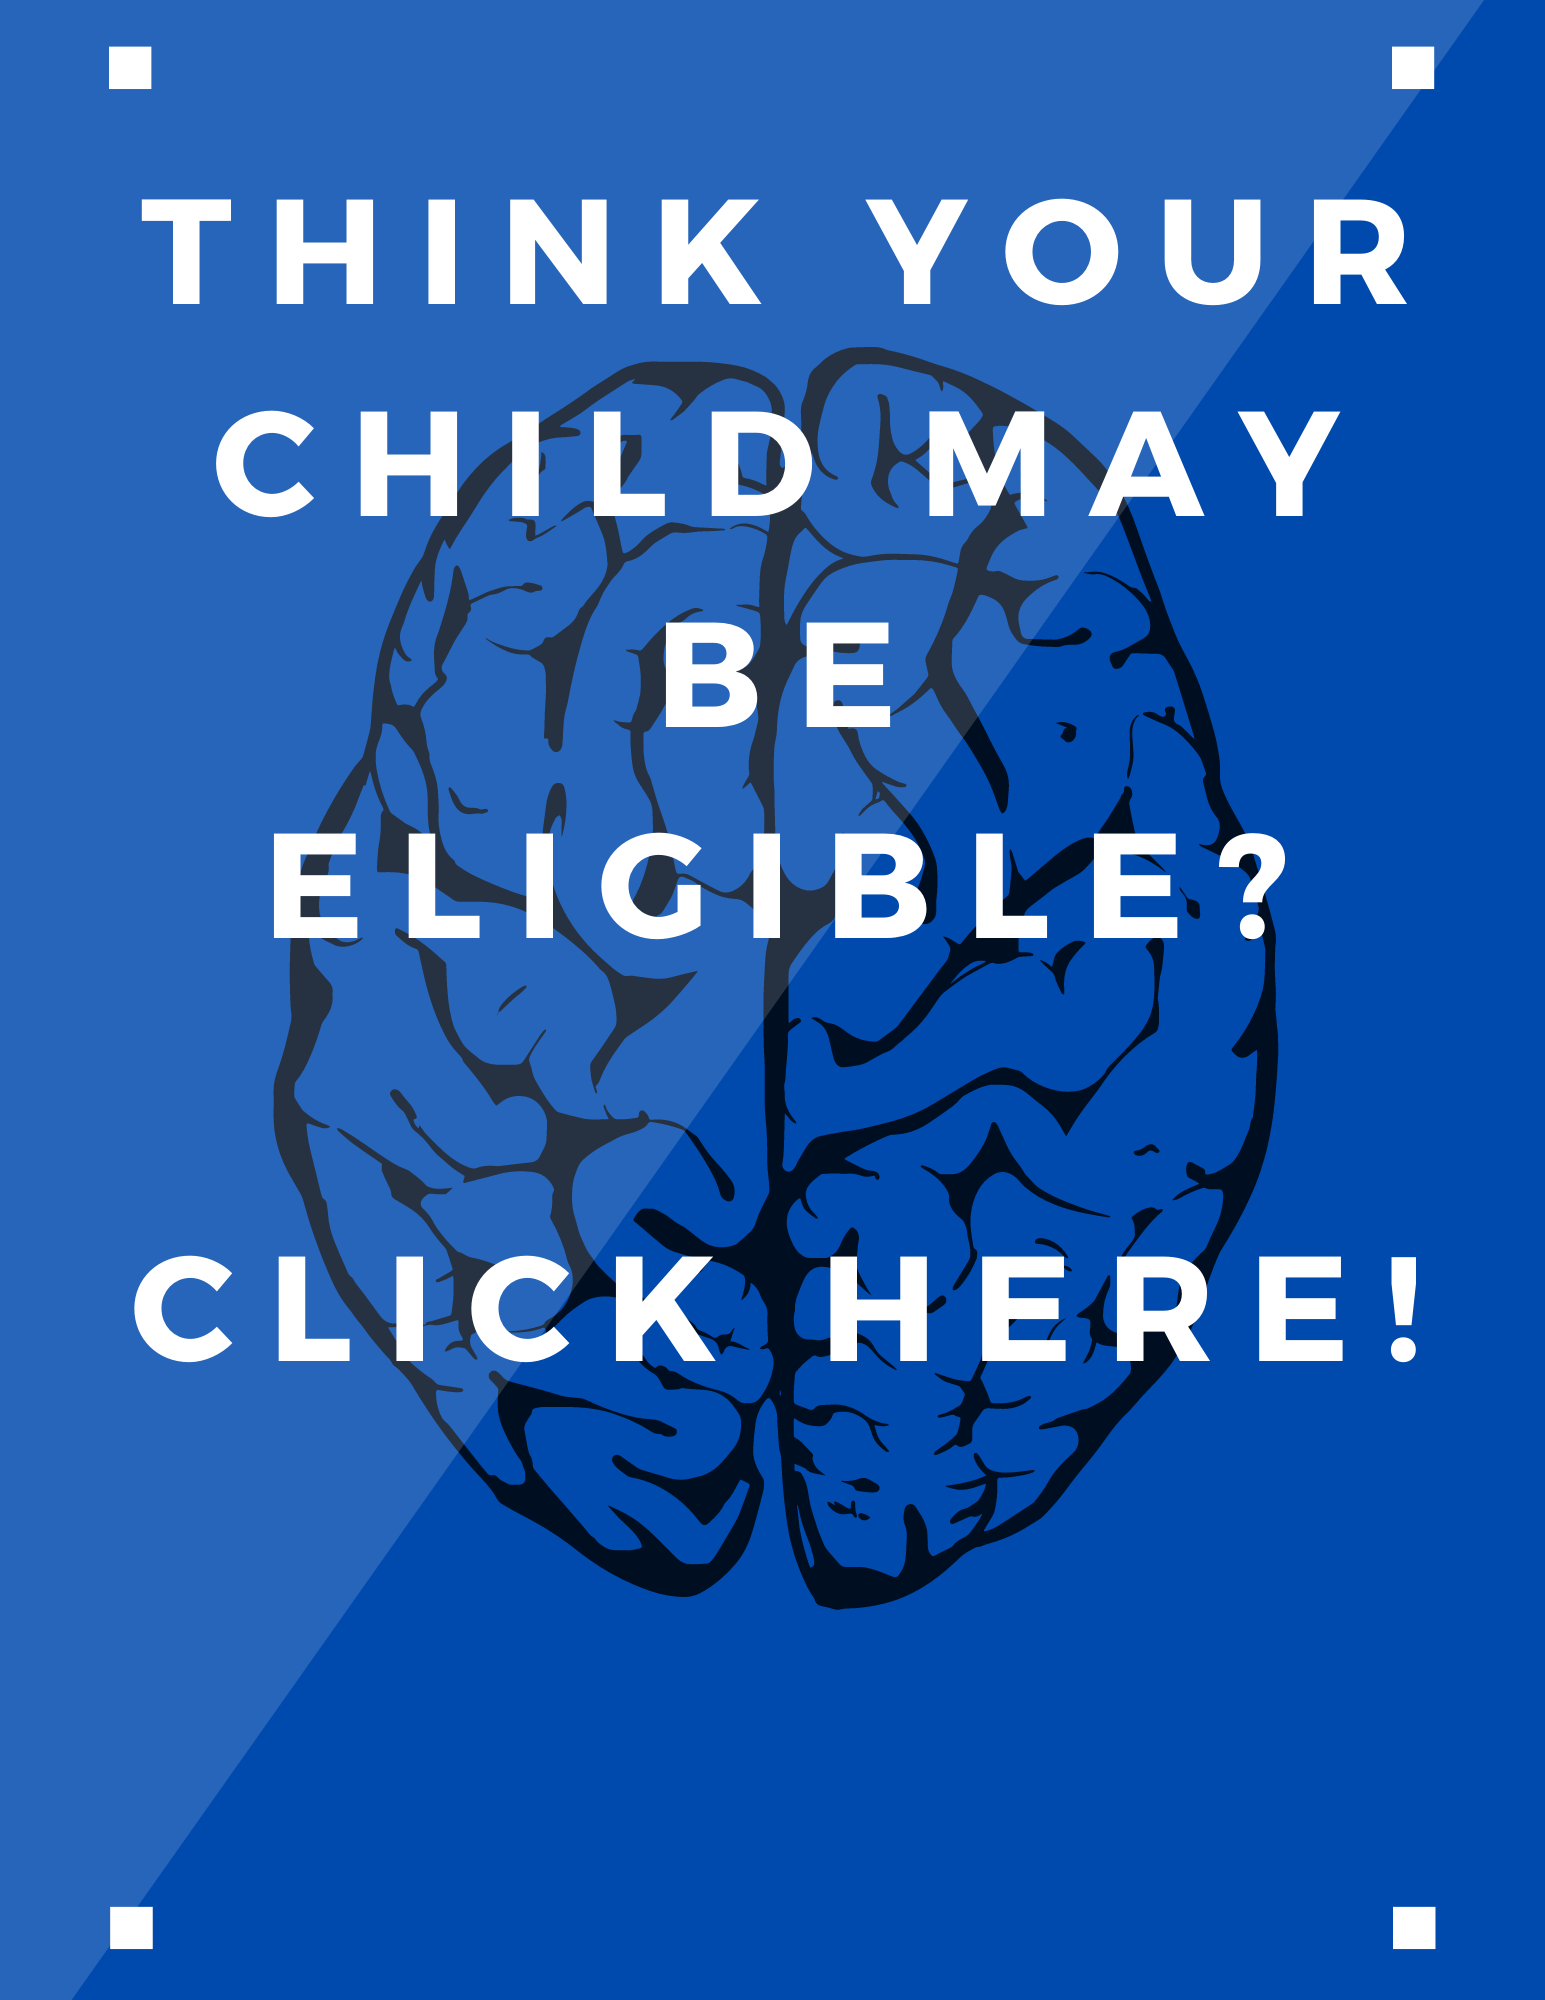 Think your child is eligible?